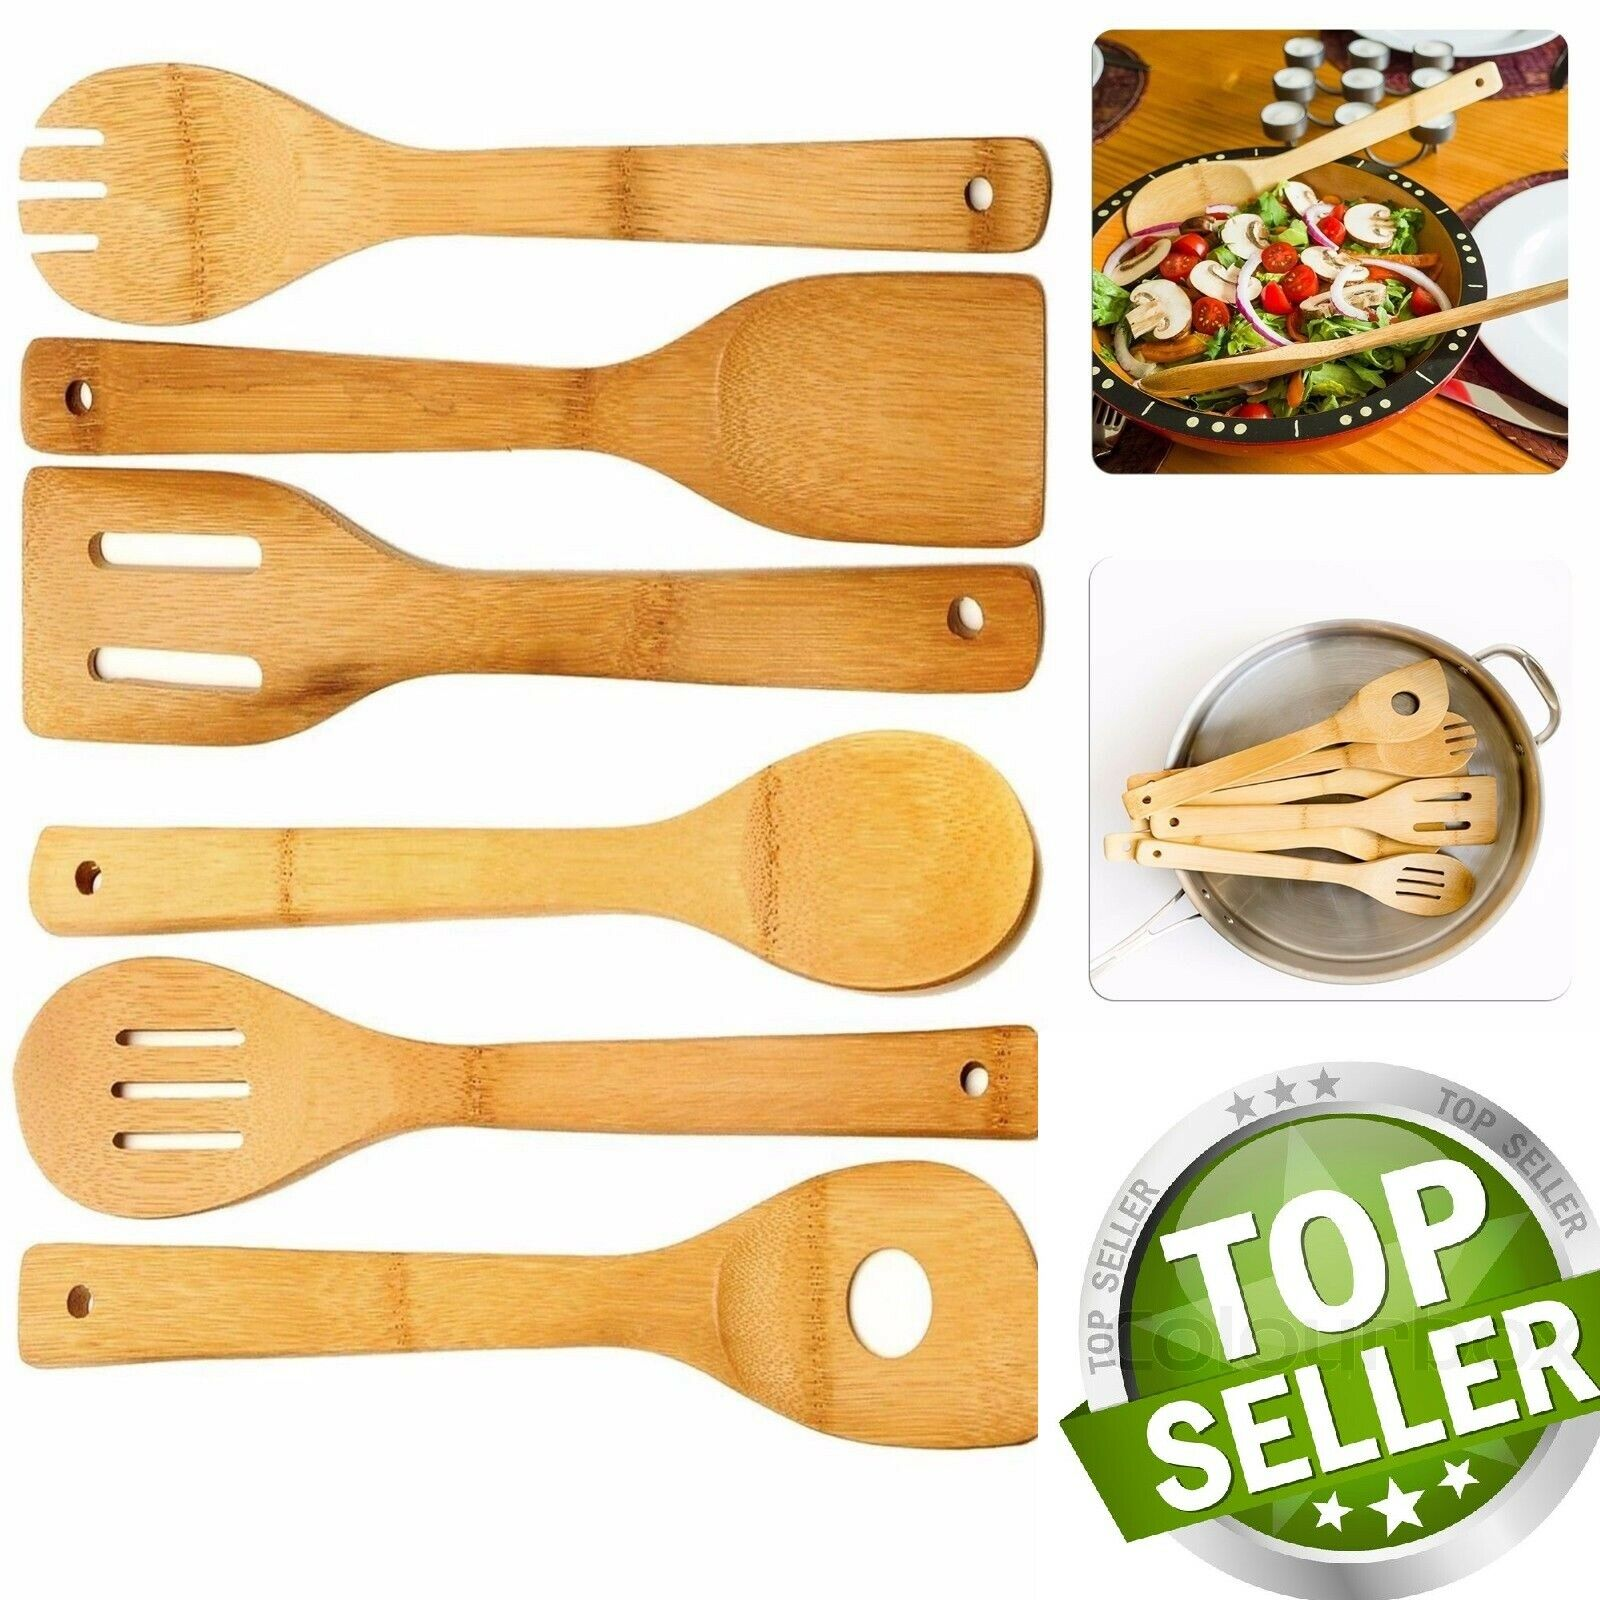 6 Piece Wooden Cooking Utensil Set Bamboo Kitchen Spatula Spoons Tools Wood Kit Cooking Utensils